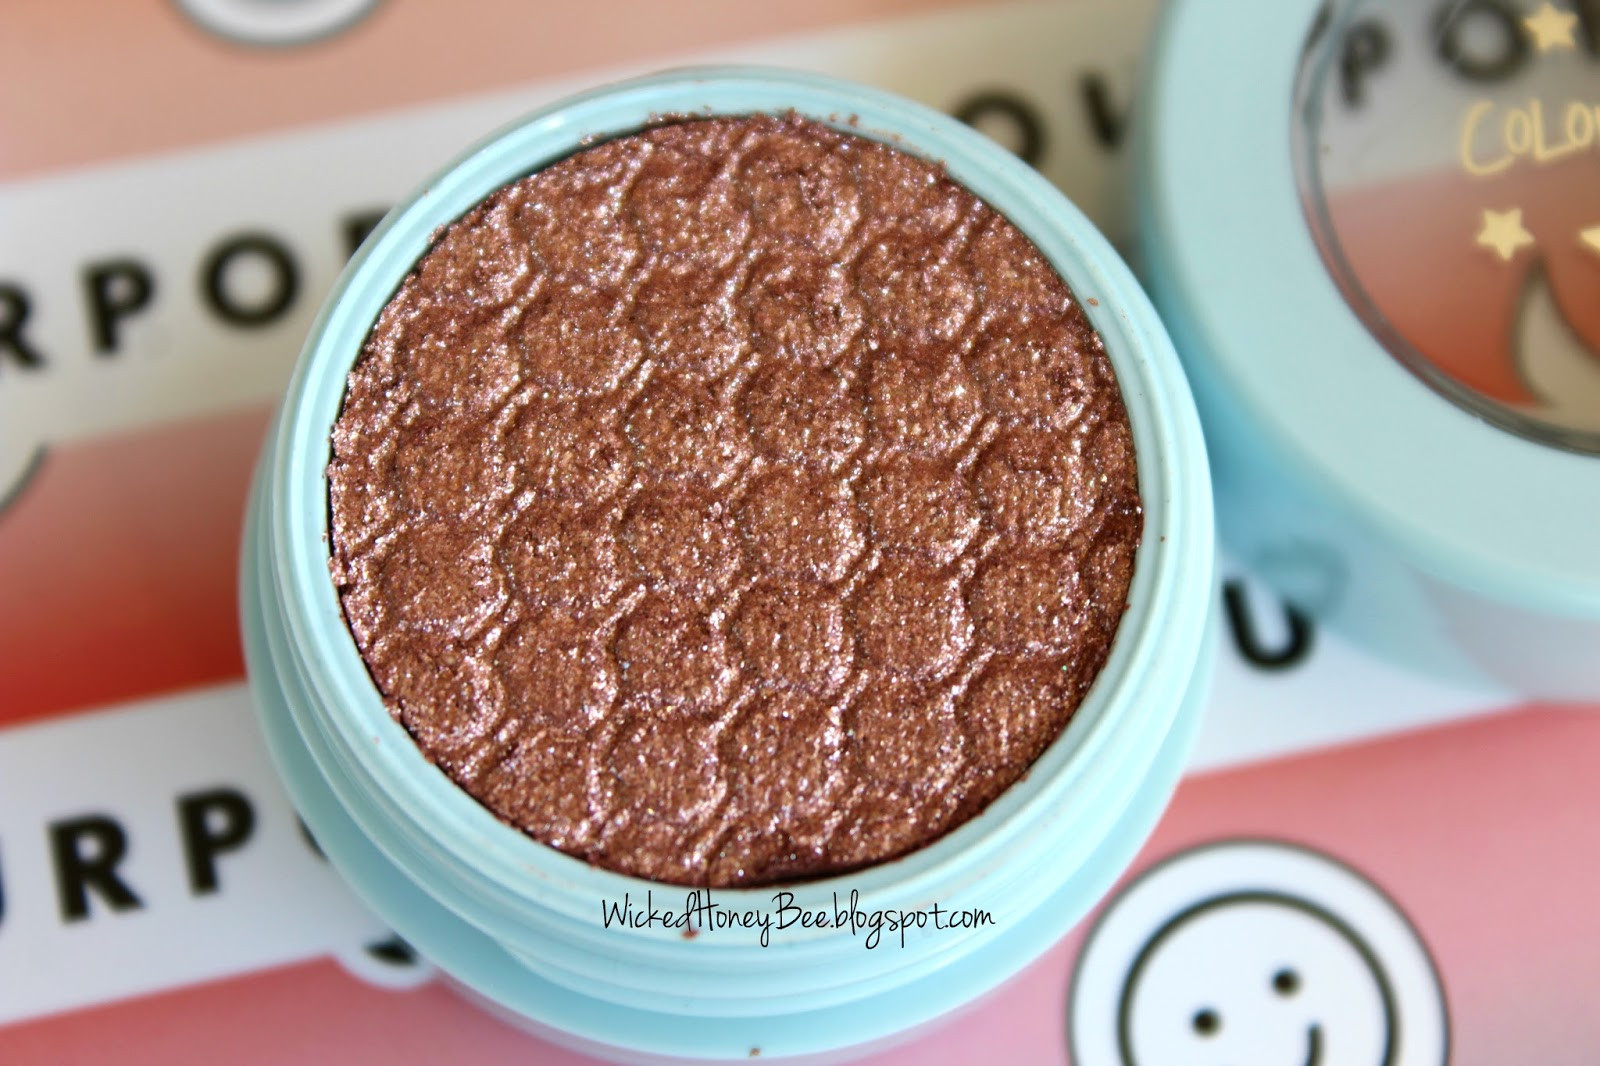 Best ideas about Colourpop Birthday Cake . Save or Pin Wicked Honey Bee Happy Birthday Colourpop Limited Now.